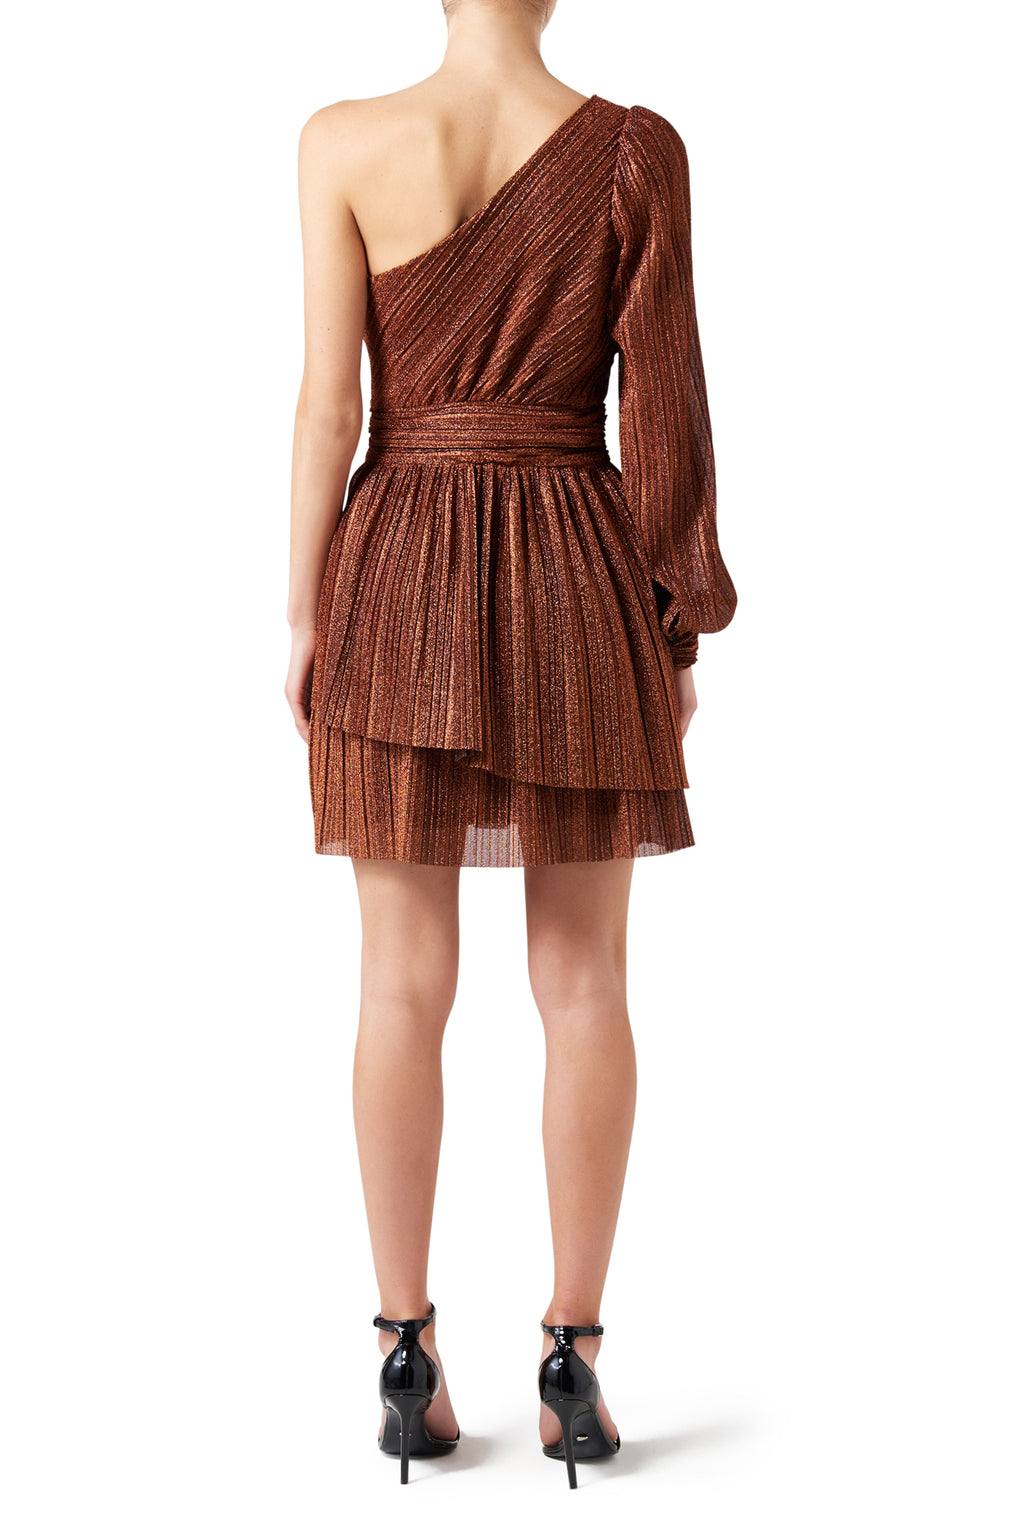 Aphrodite Mini Dress - Rust